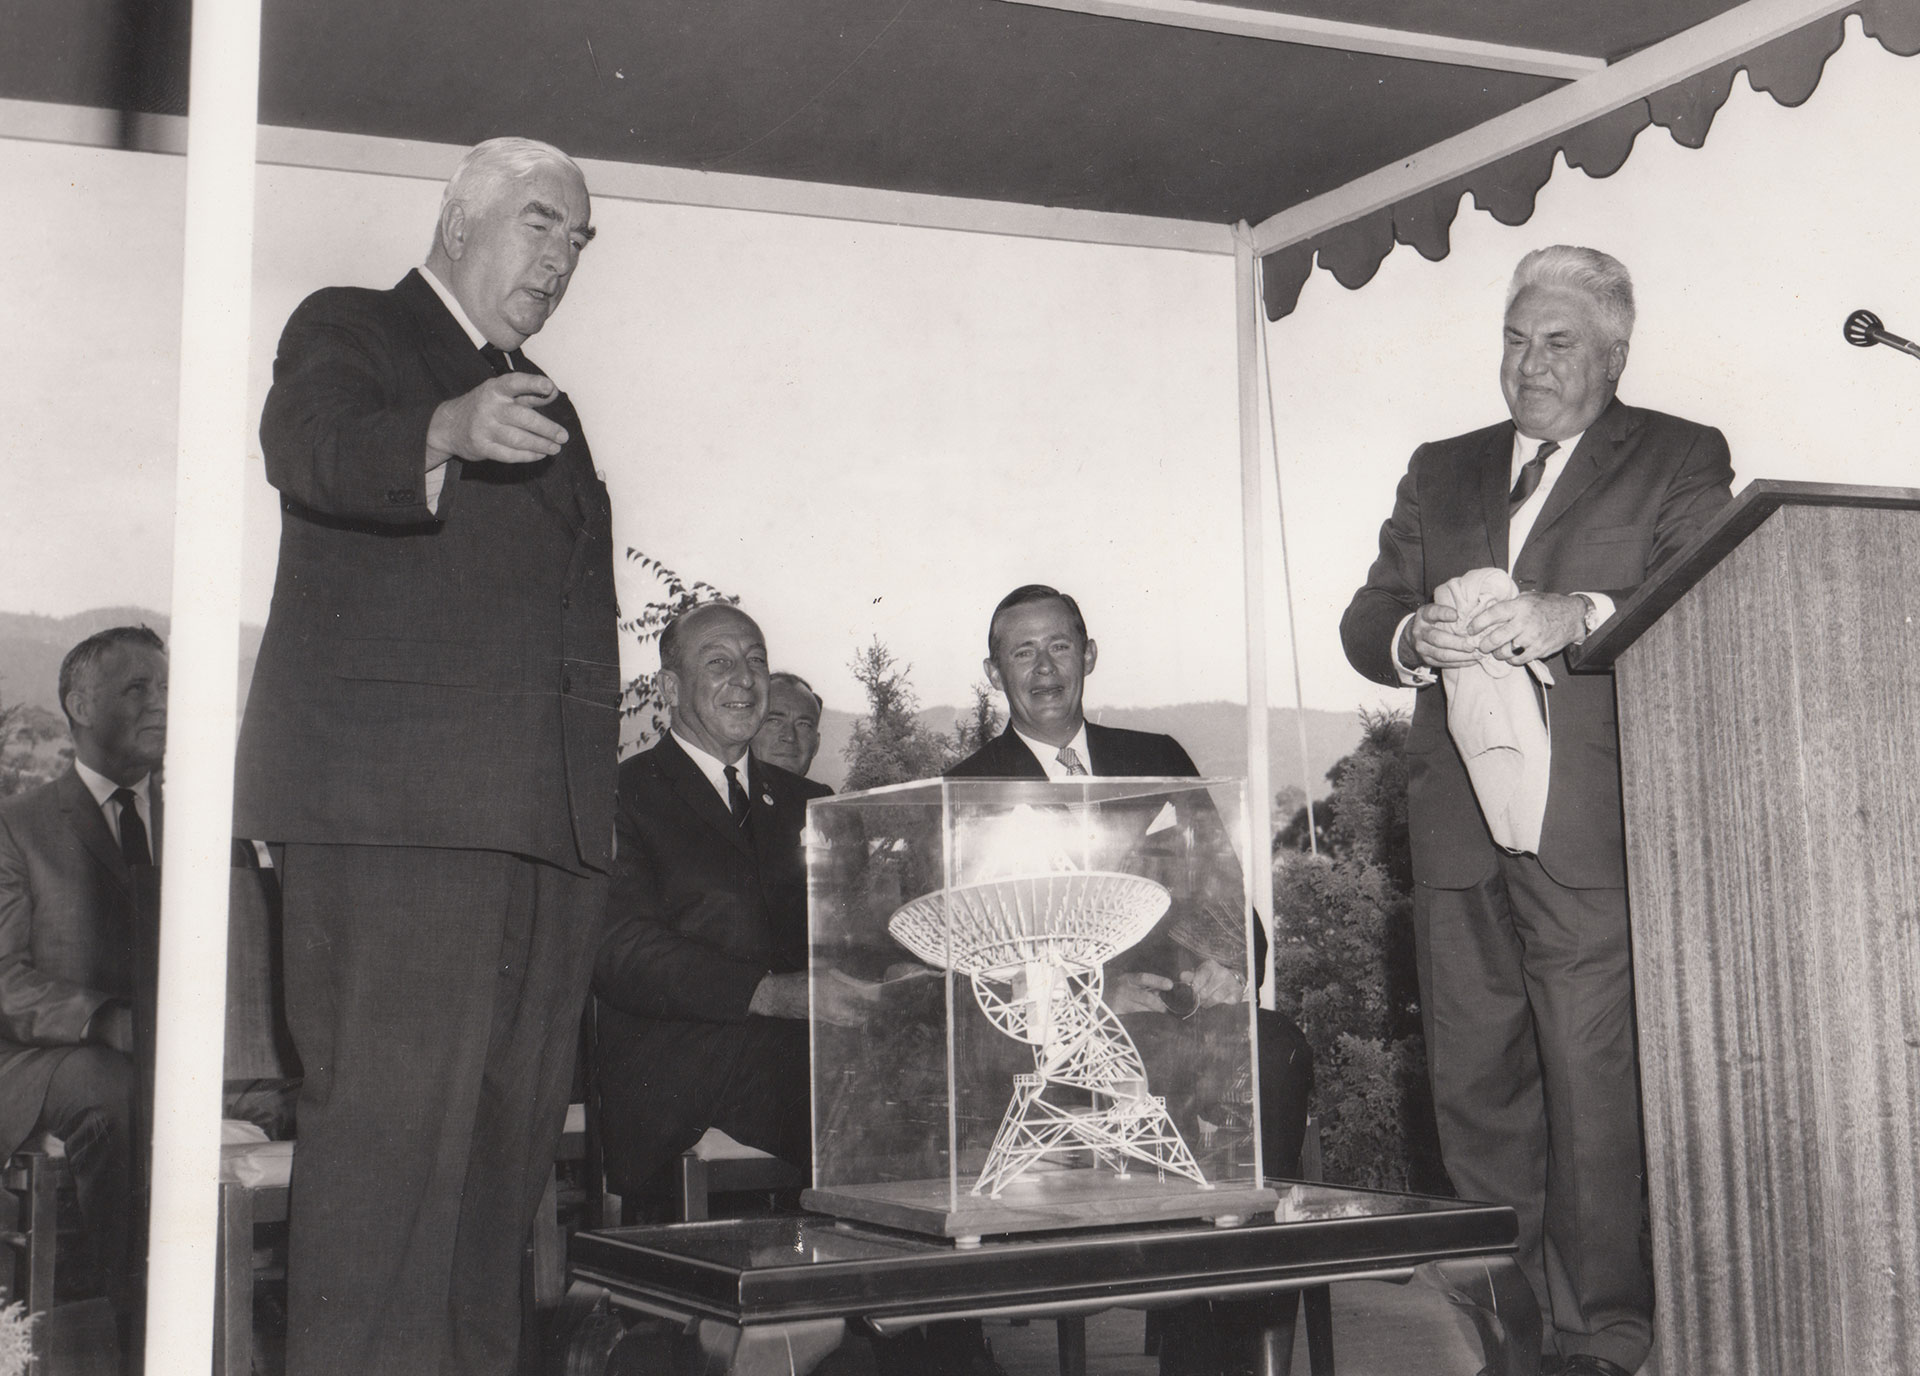 Prime Minister Robert Menzies at the opening of Tidbinbilla DSIF42. 19 March 1965. Image:CDSCC